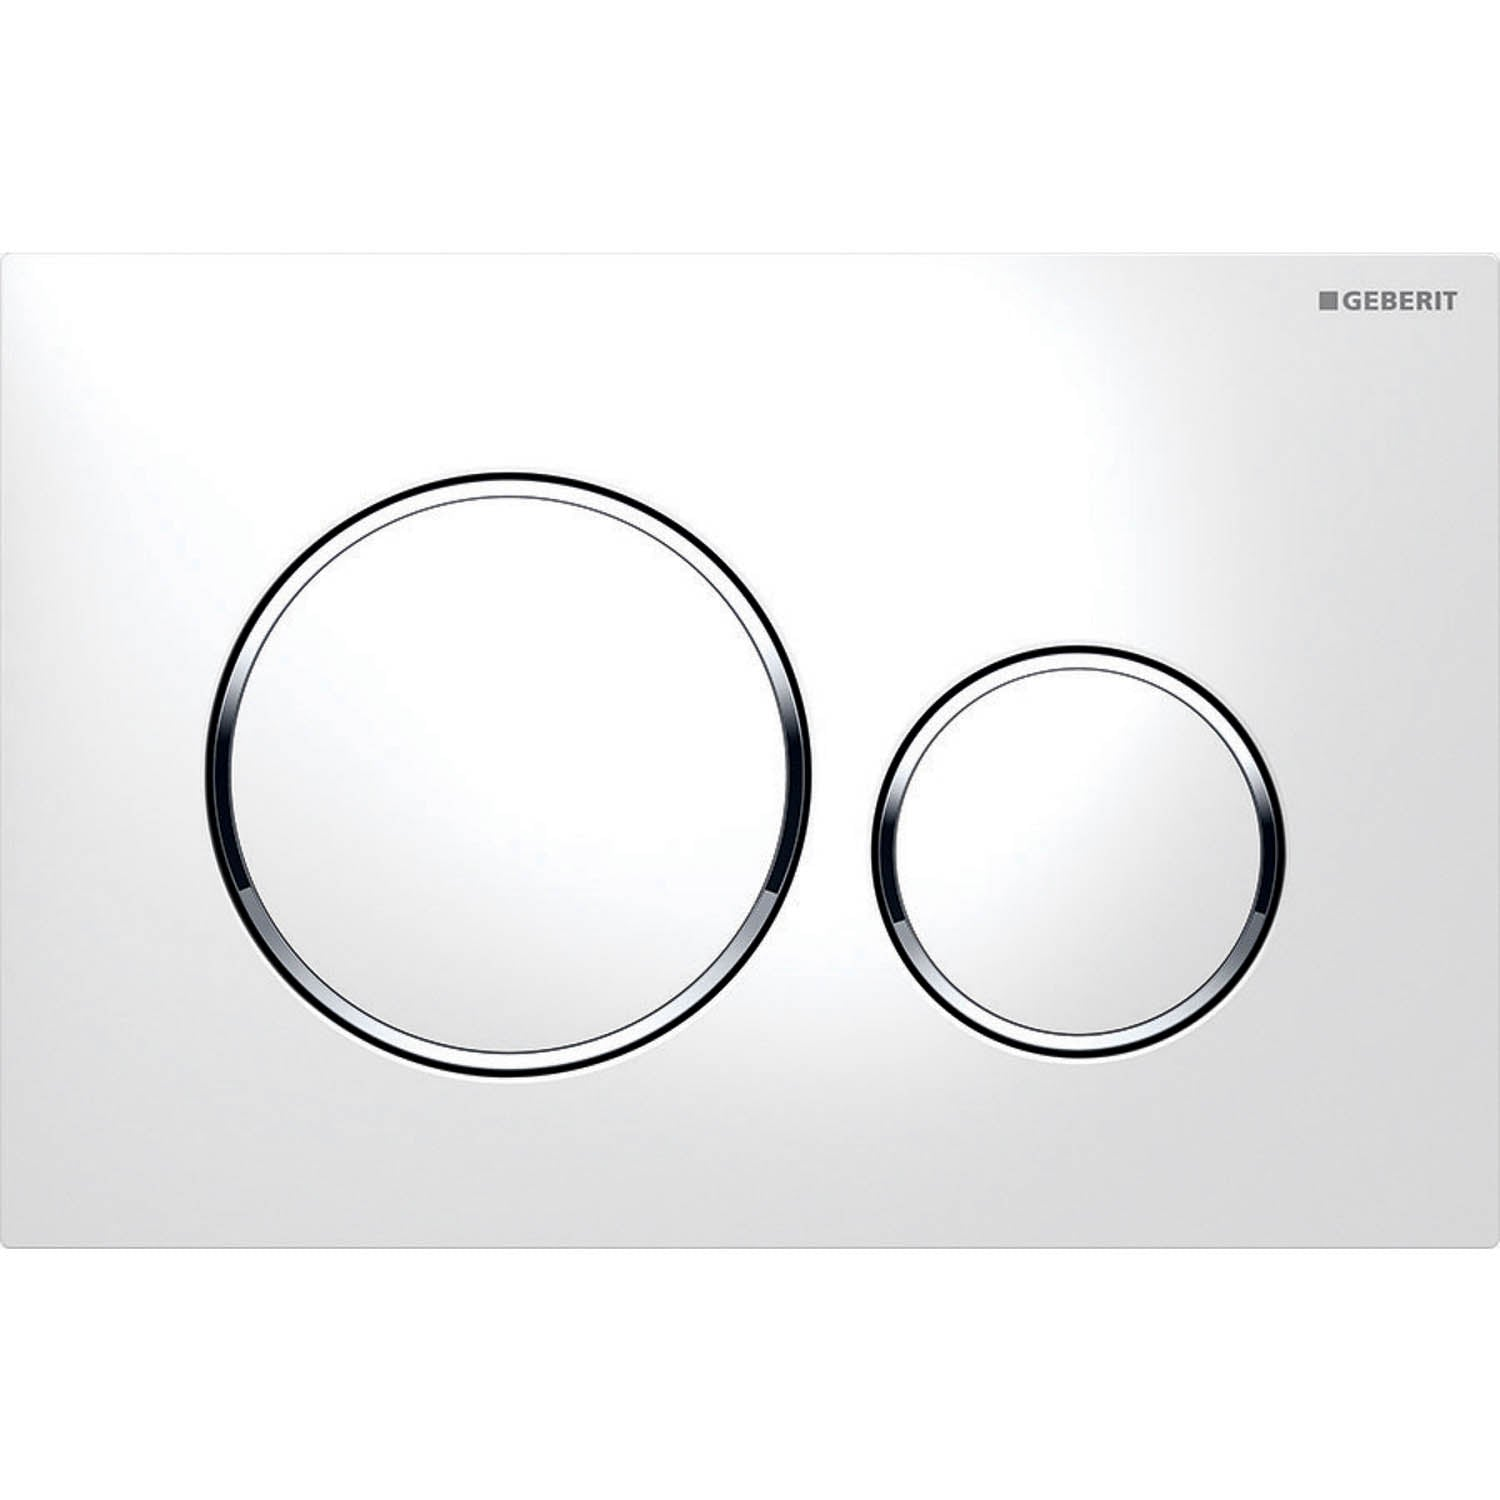 Sigma Round Dual Action Flush Plate with a white and chrome finish on a white background